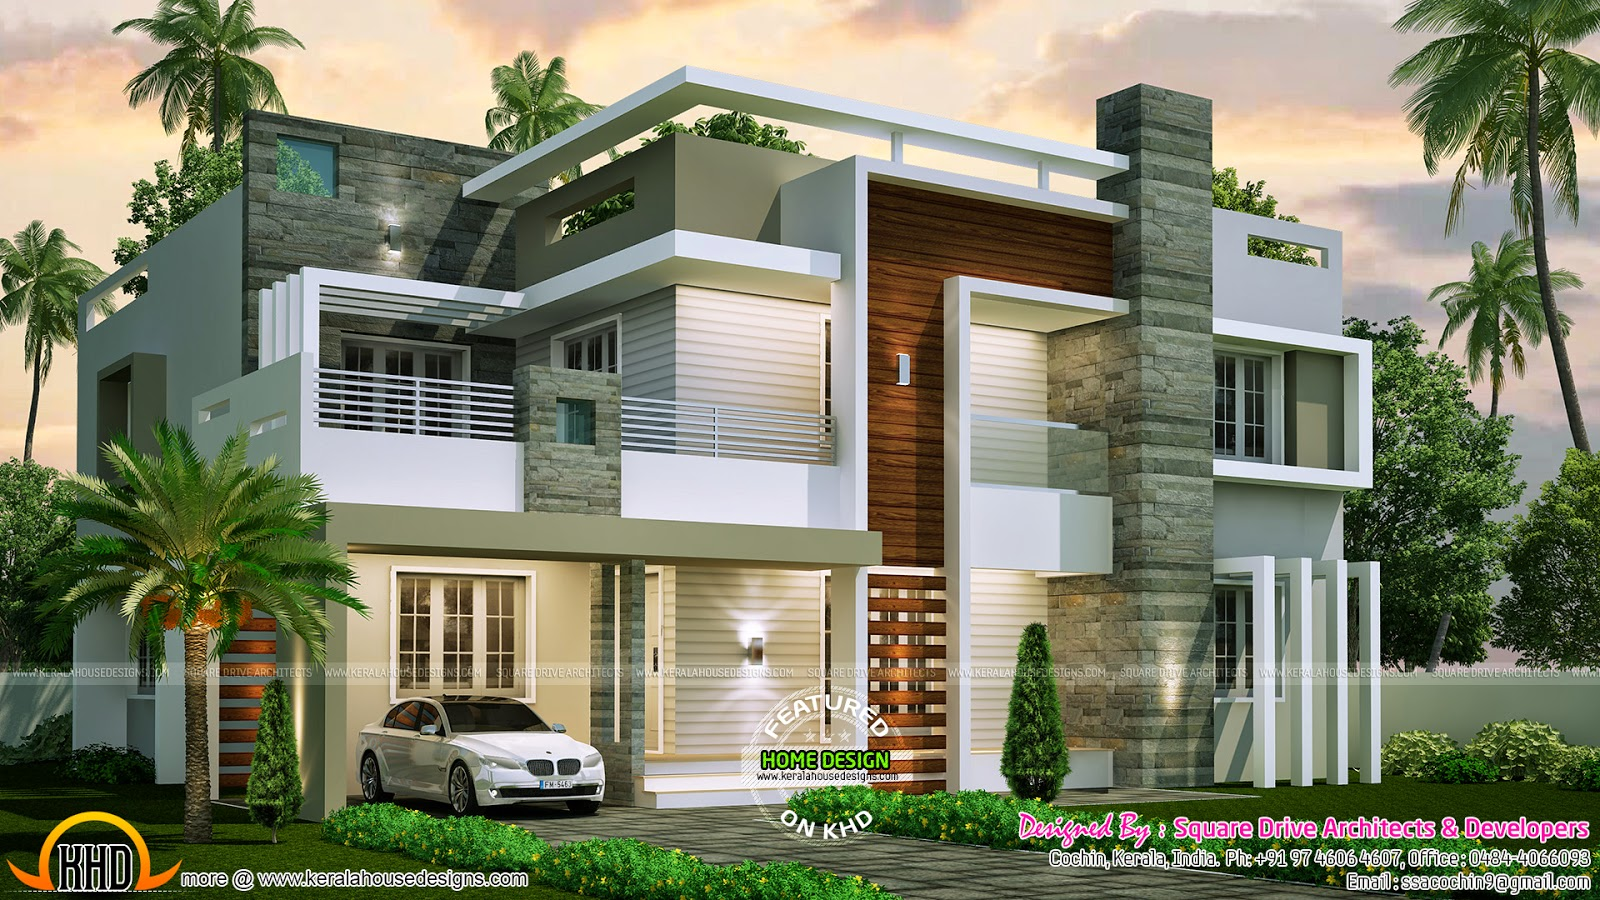 4 bedroom contemporary home design kerala home design for One floor contemporary house design